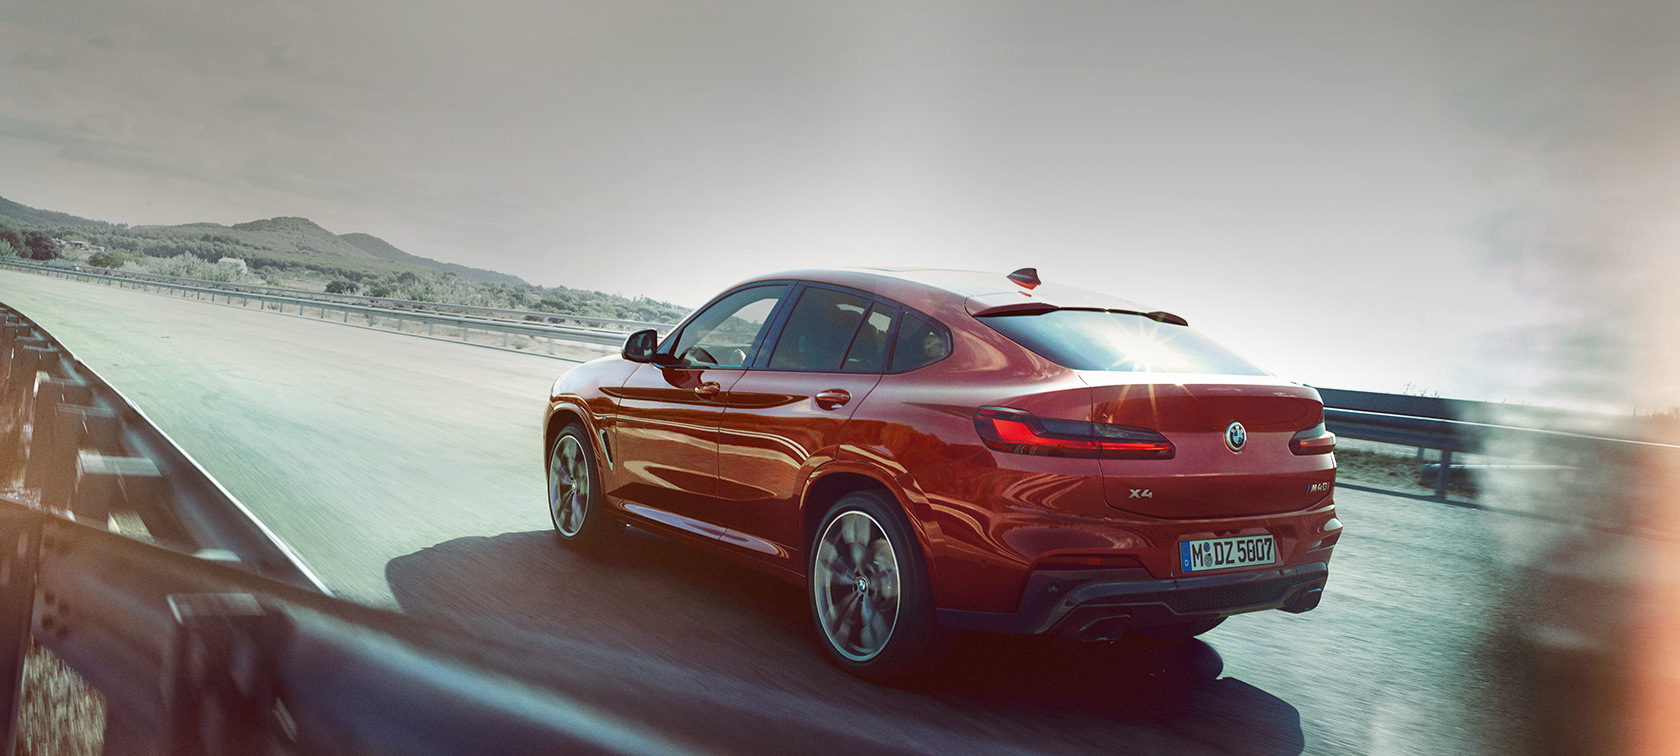 BMW X4 M40i G02 2018 Flamenco Red brilliant effect three-quarter rear view driving on the road